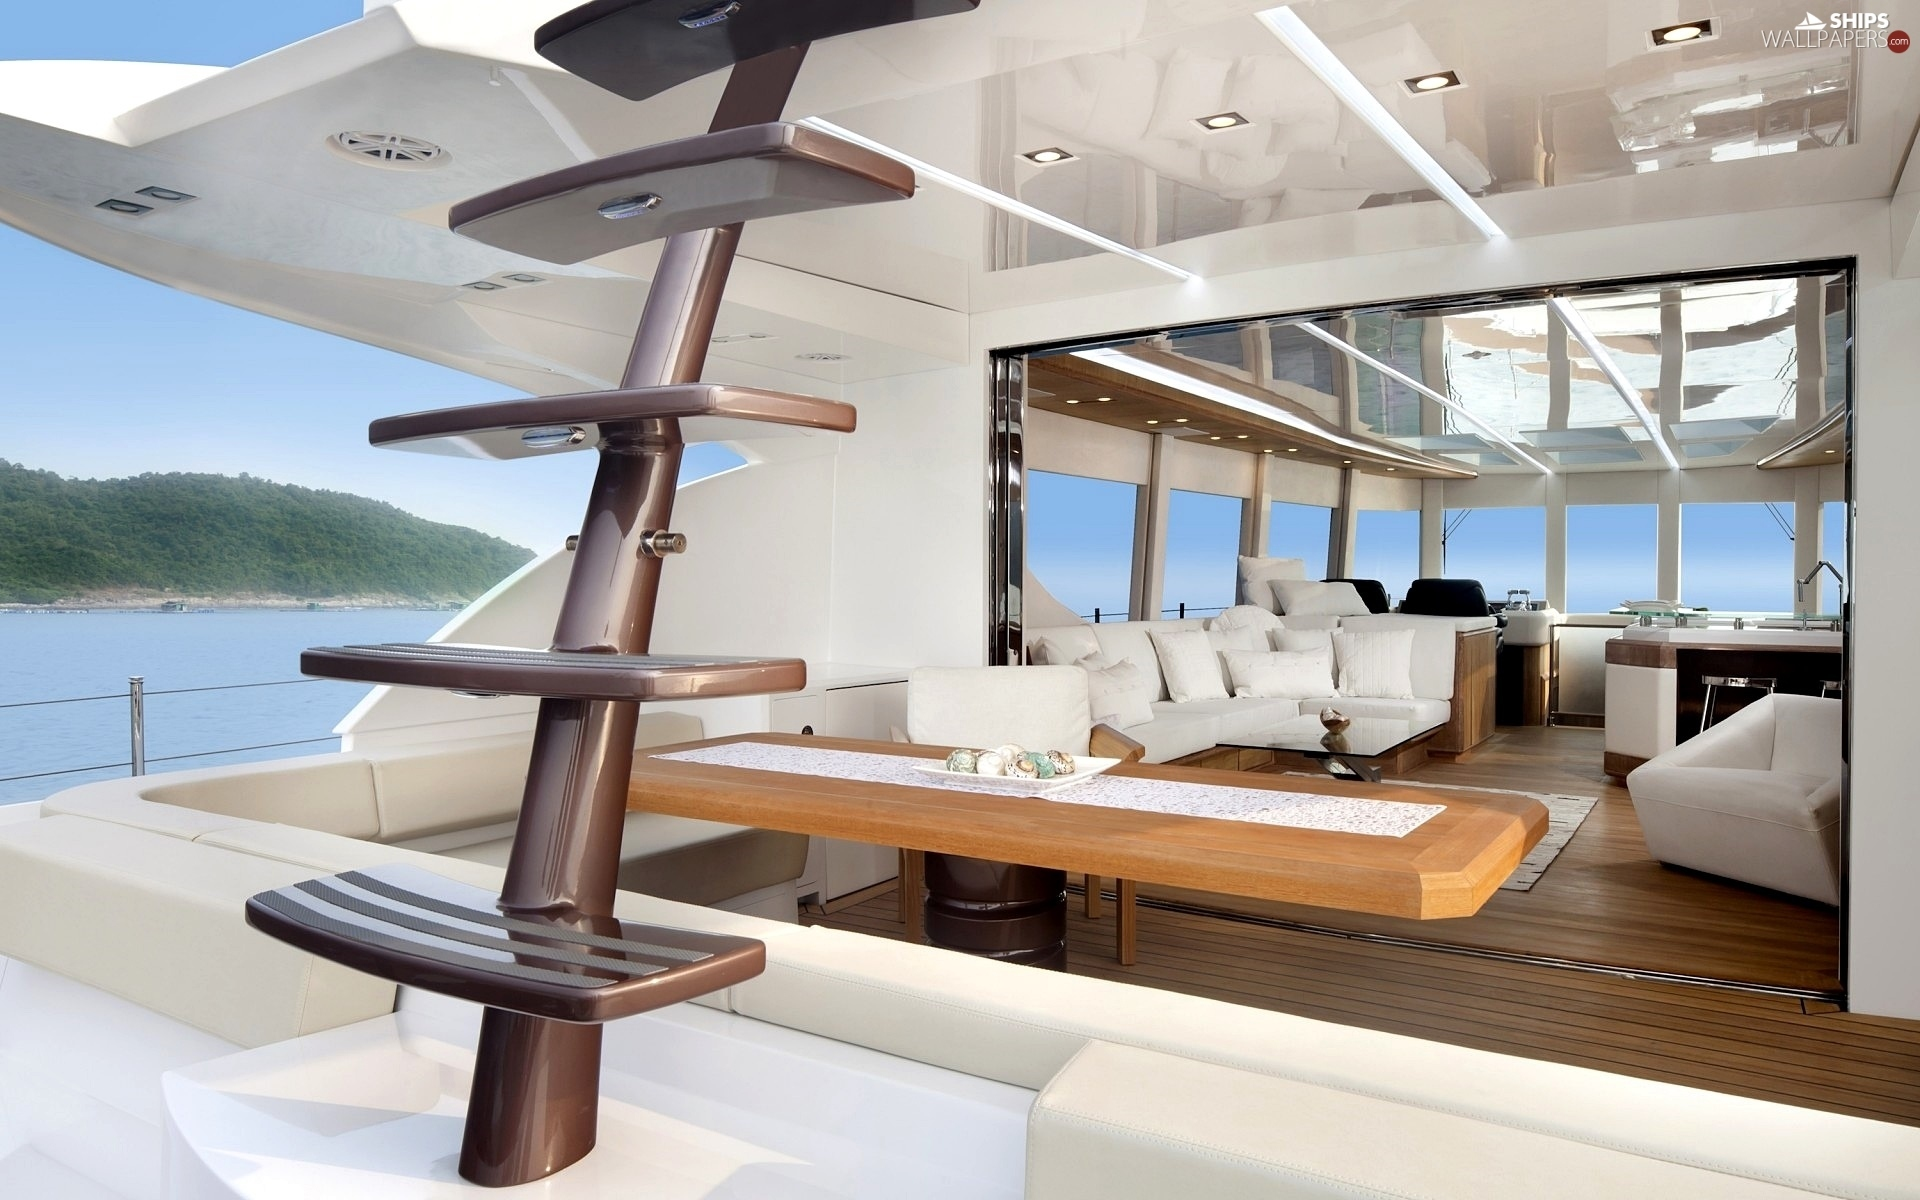 http://weboatlovers.wehomeowners.com/wp-content/uploads/2016/07/Yacht-Photo_001.jpg